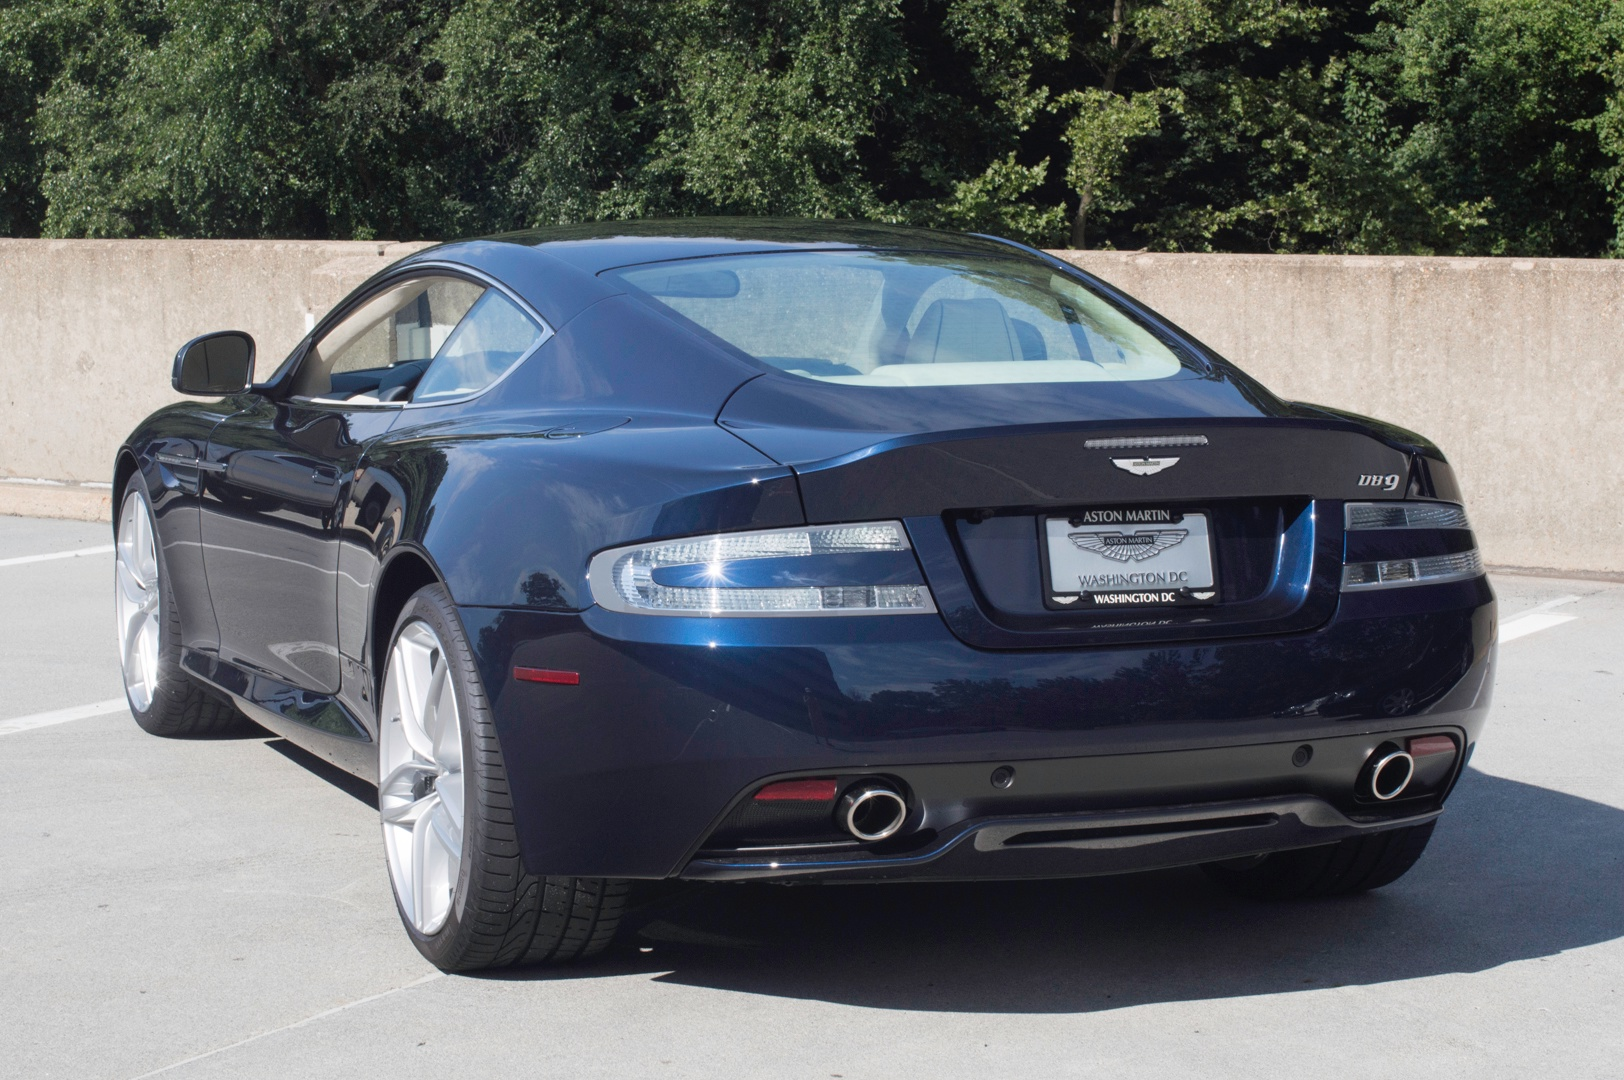 2014 aston martin db9 stock 4na15832 for sale near. Cars Review. Best American Auto & Cars Review